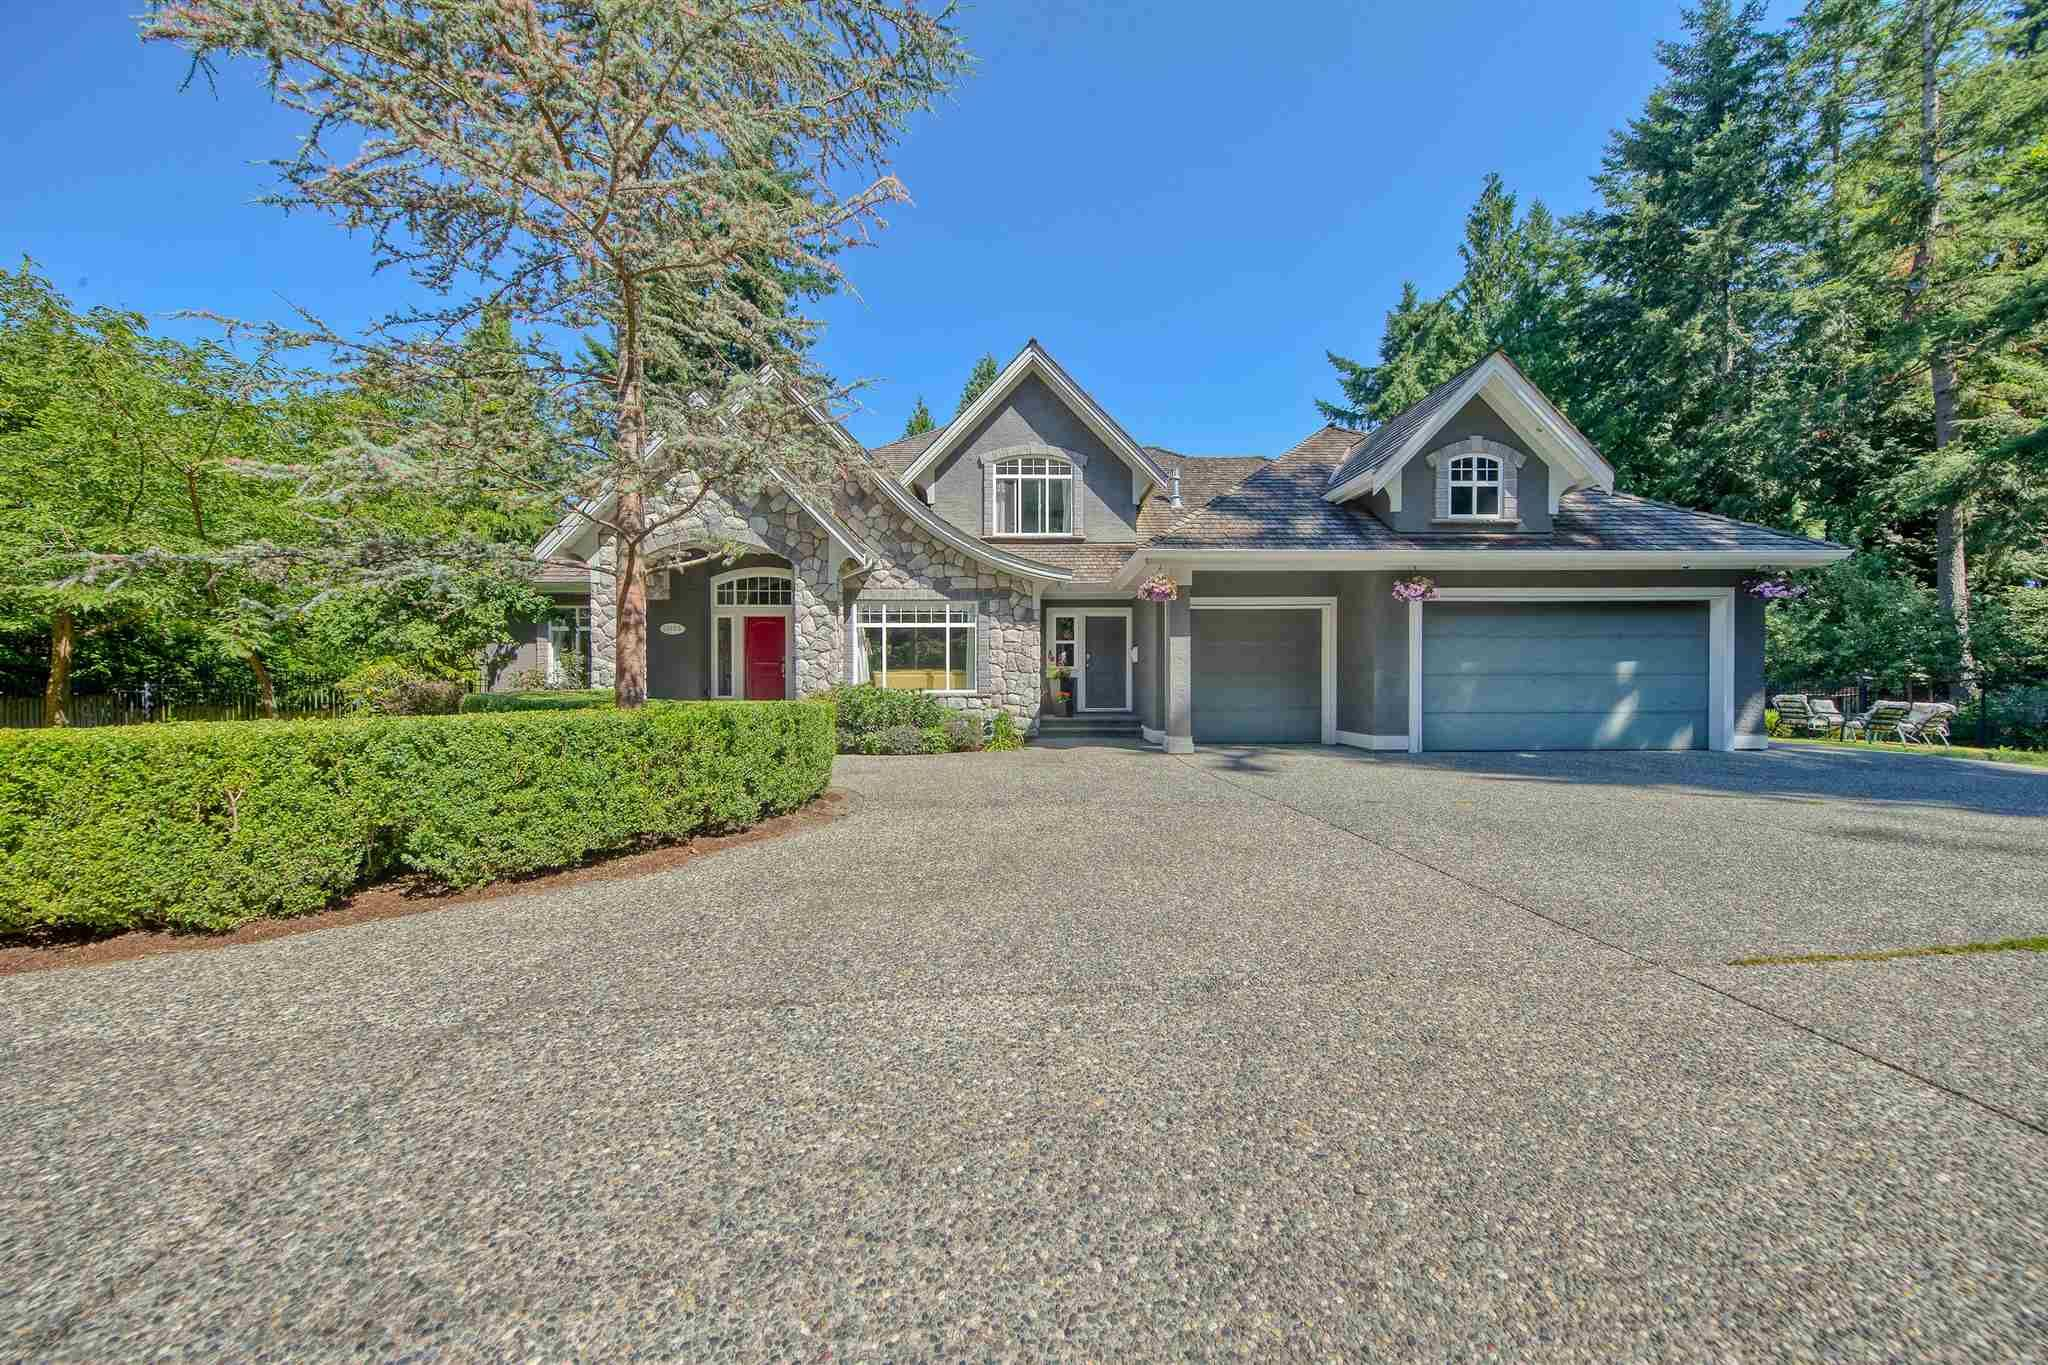 Main Photo: 14125 28 Avenue in Surrey: Elgin Chantrell House for sale (South Surrey White Rock)  : MLS®# R2607412